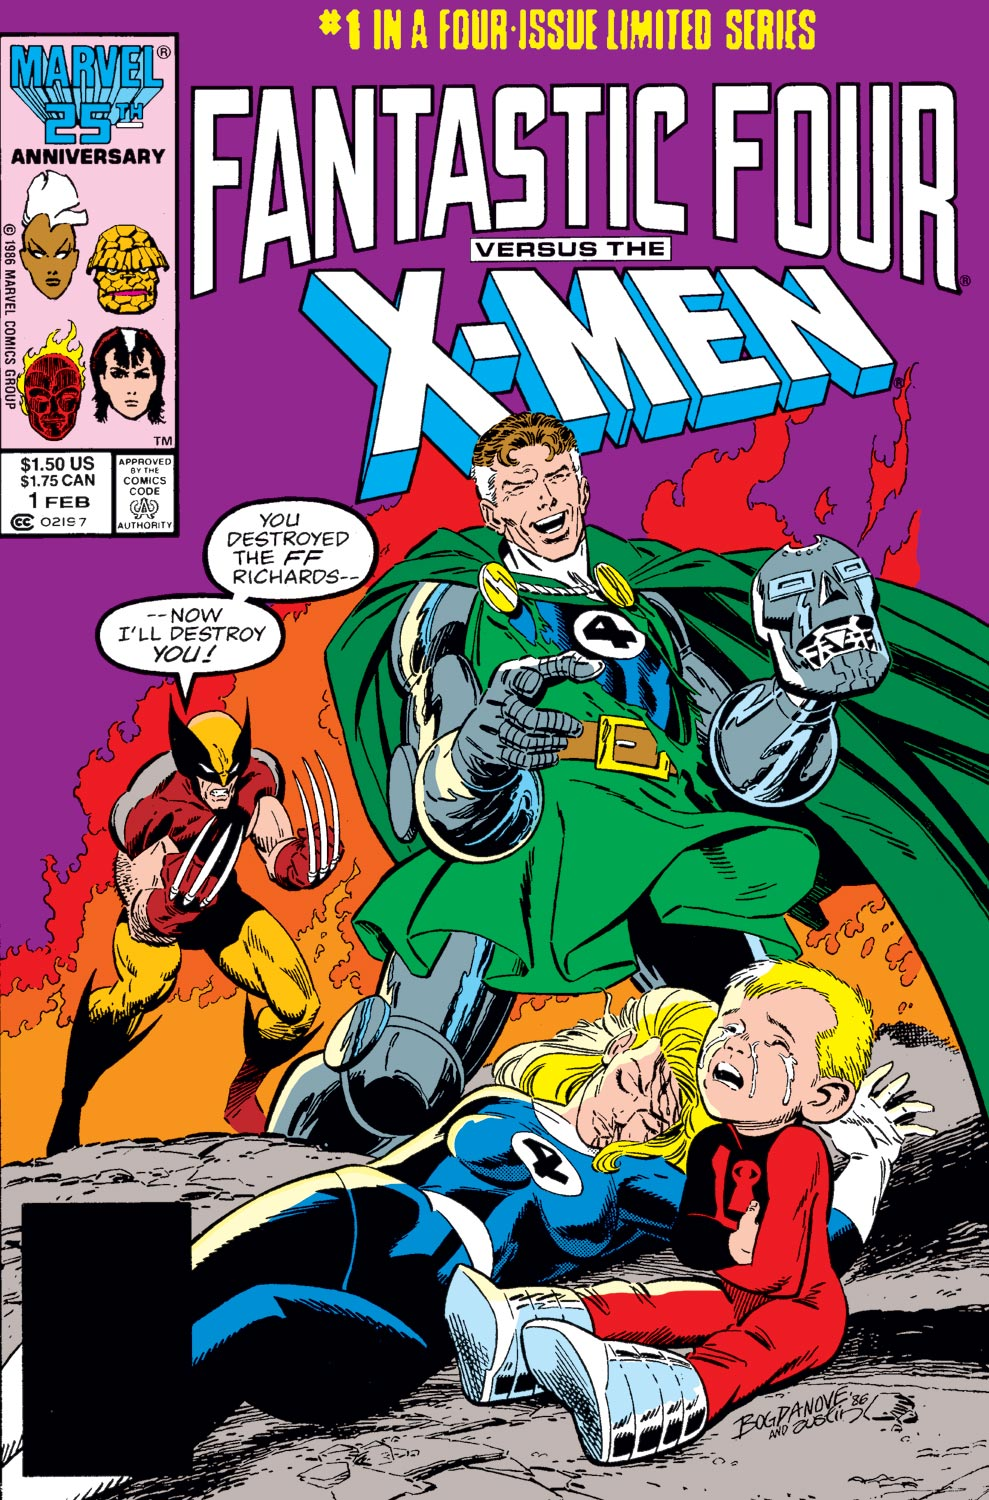 Fantastic Four vs. the X-Men (1987) #1